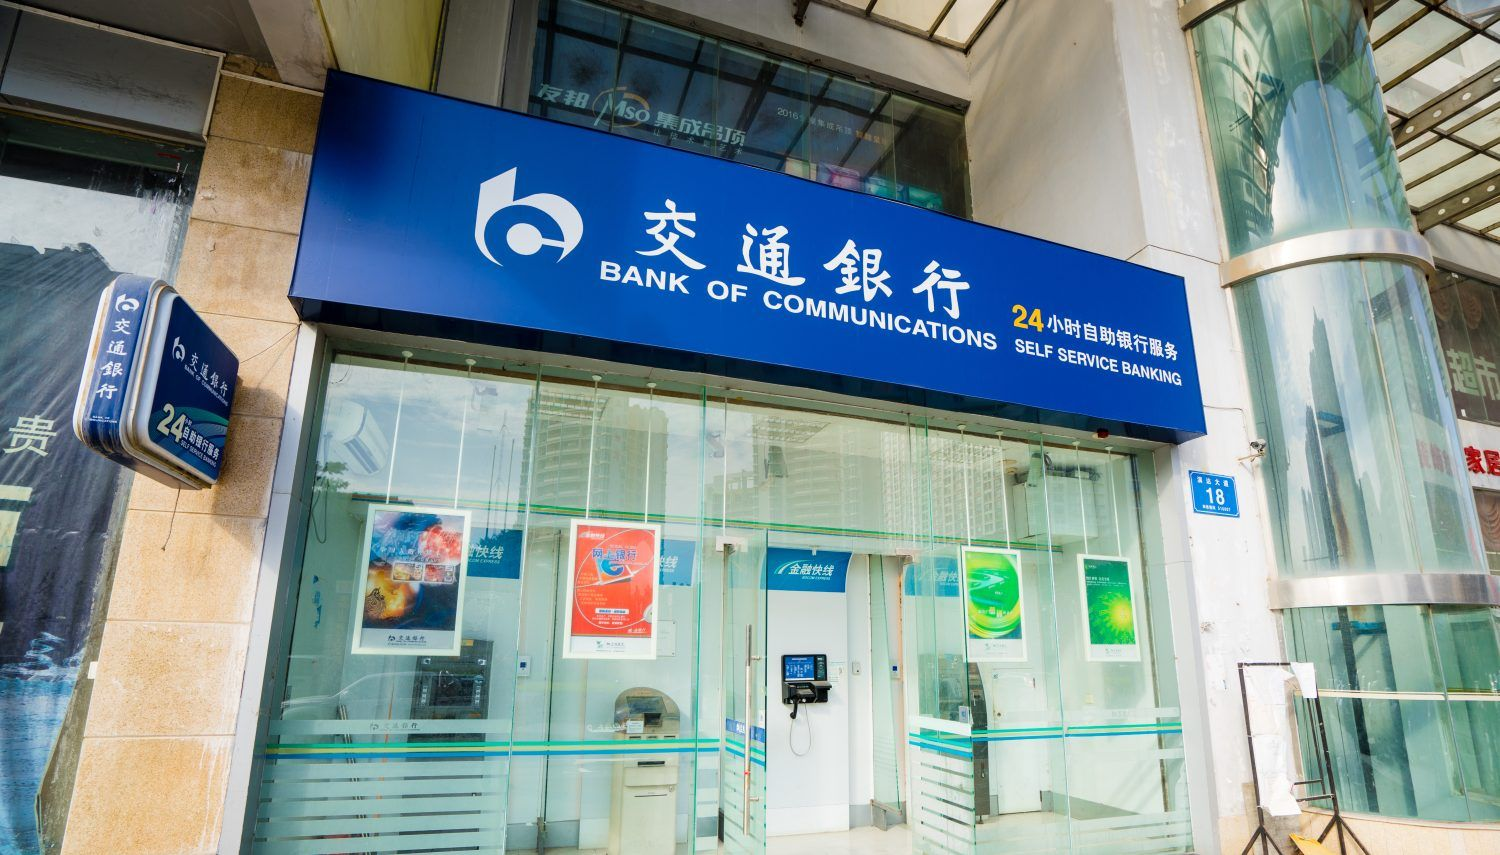 Bank Of Communications One Of The Four State Owned Commercial Banks In China Has Completed A Major Issuance Of Residential Banking Blockchain Commercial Bank